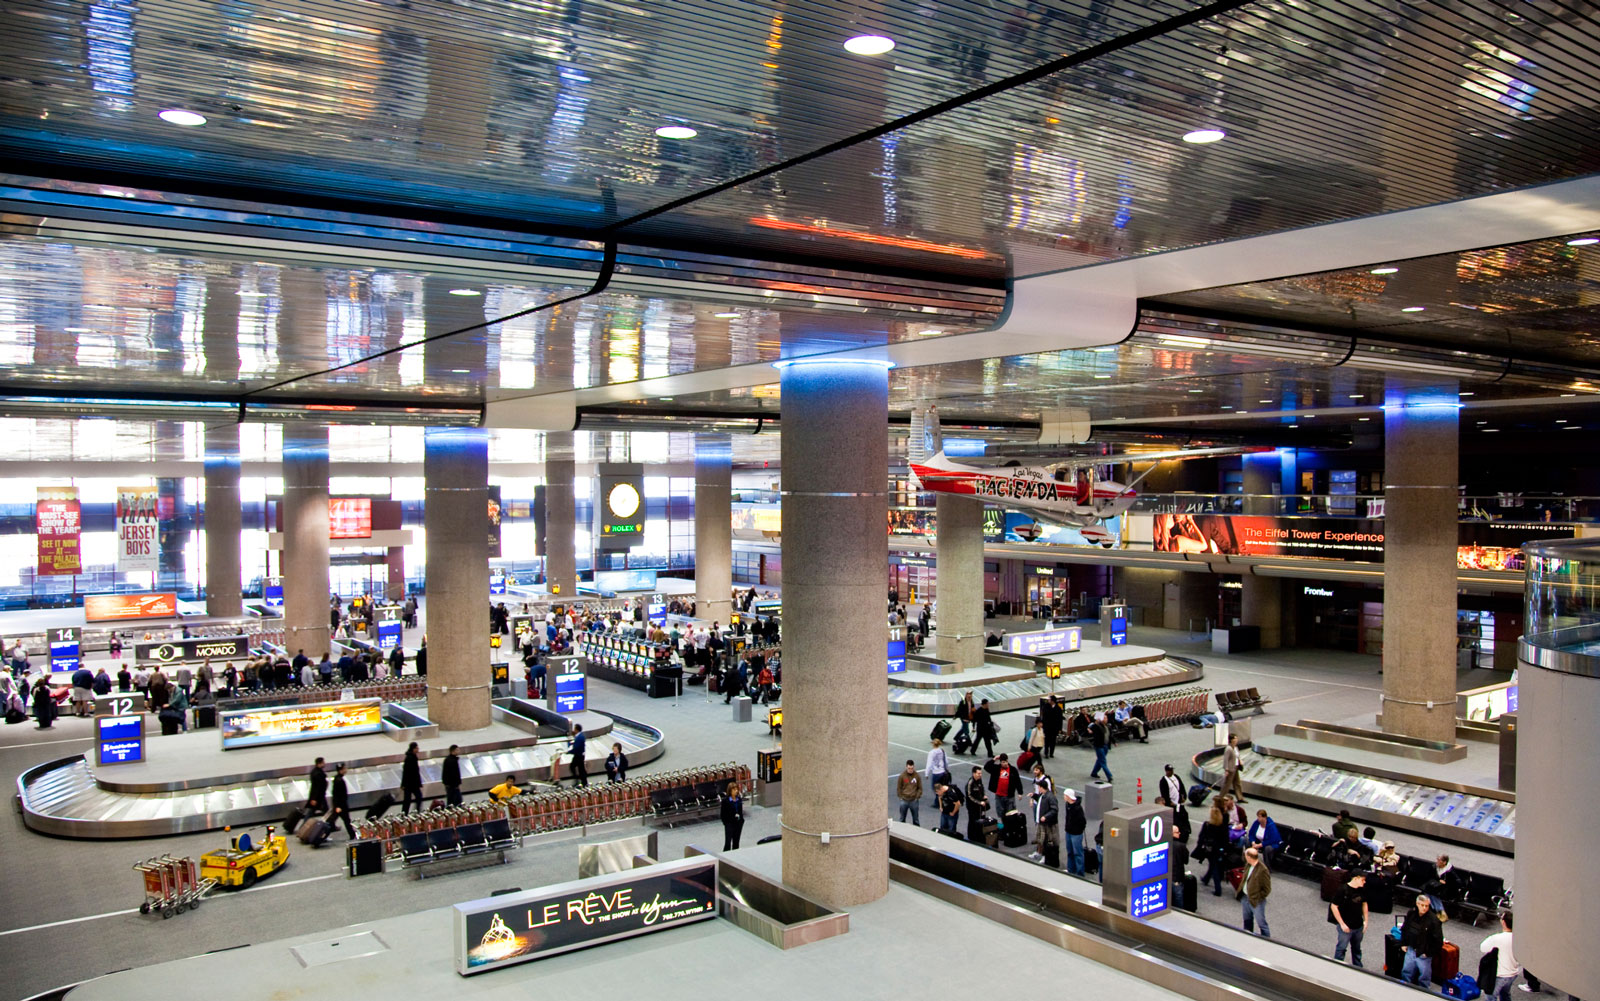 America's best and worst airports: Las Vegas (LAS)